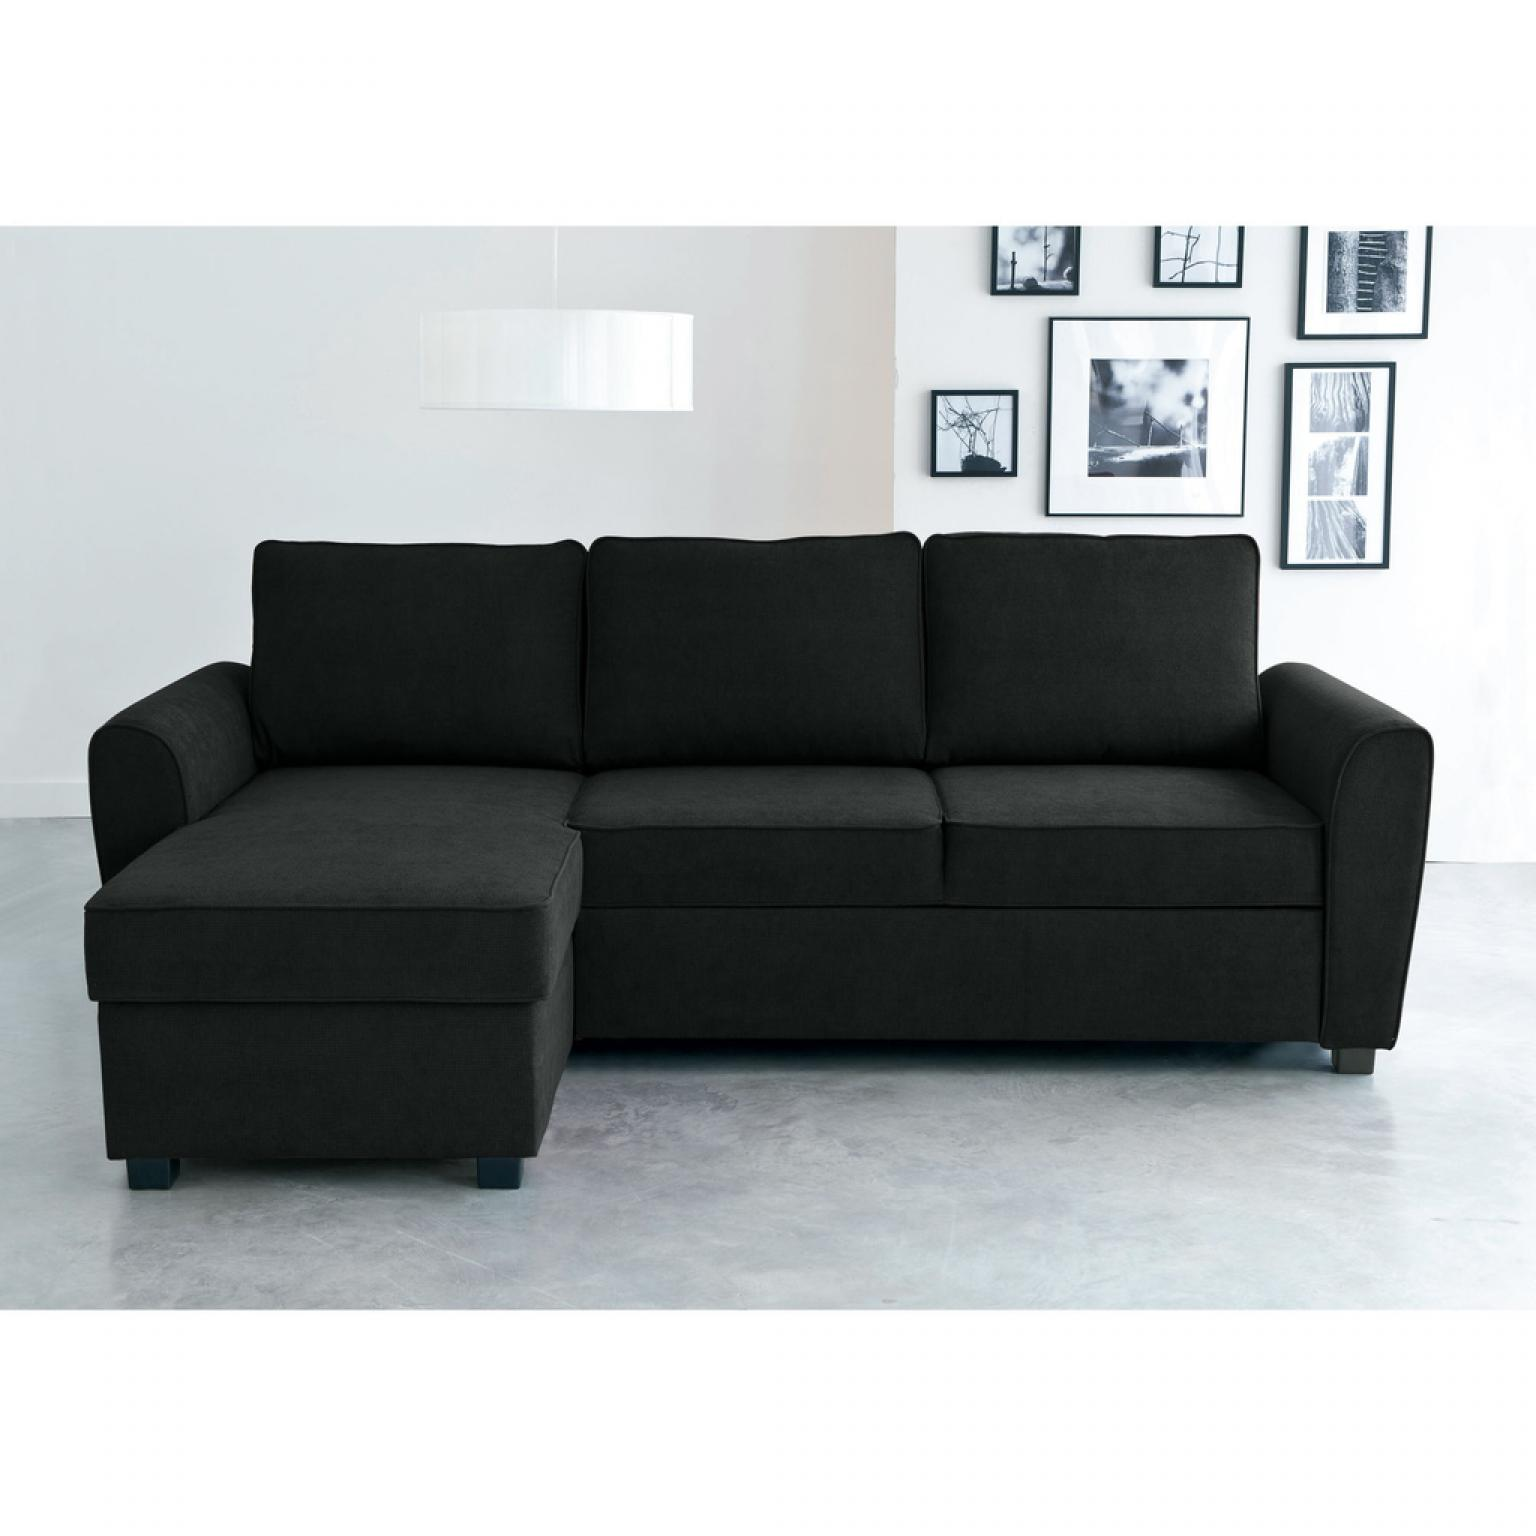 Canape convertible pas cher conforama 28 images photos - Housse canape d angle conforama ...